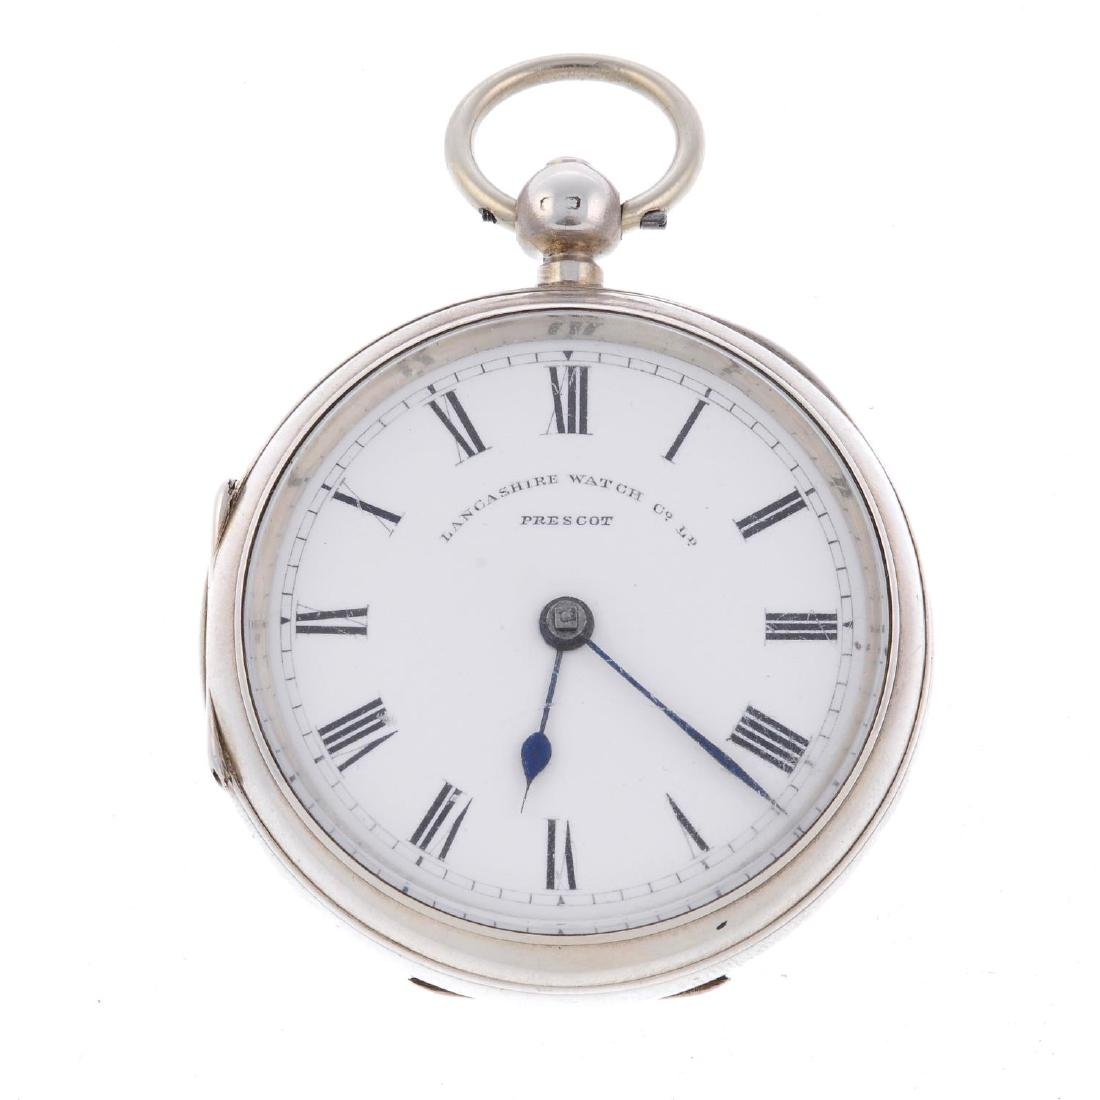 An open face pocket watch by Lancashire Watch Company.